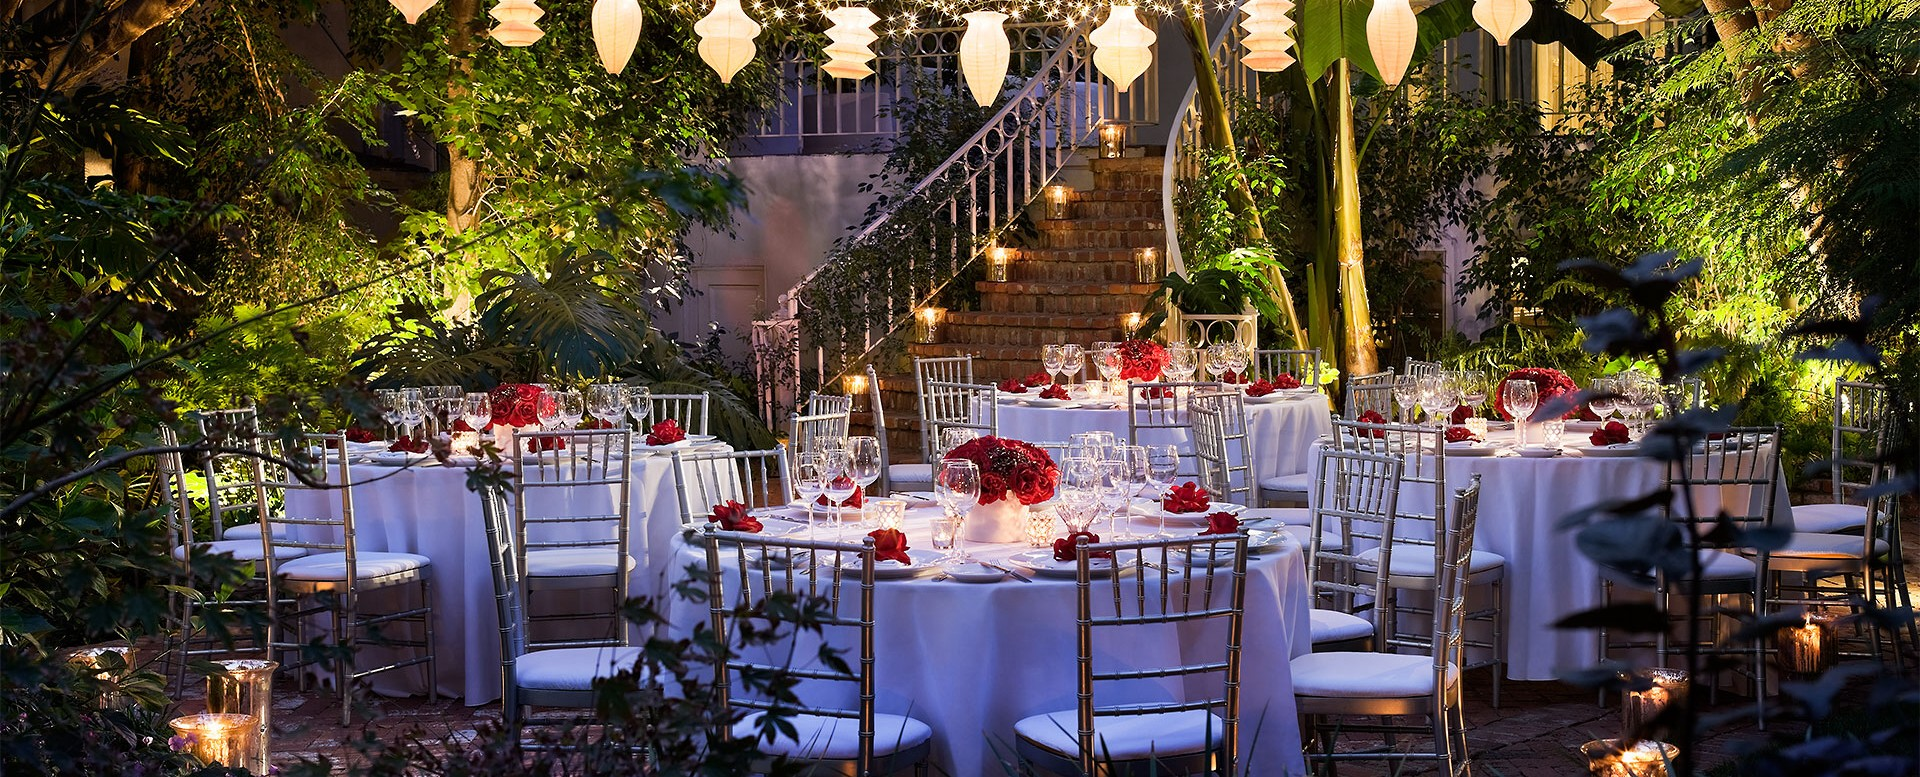 Sunset Marquis Hotel - Wedding Reception